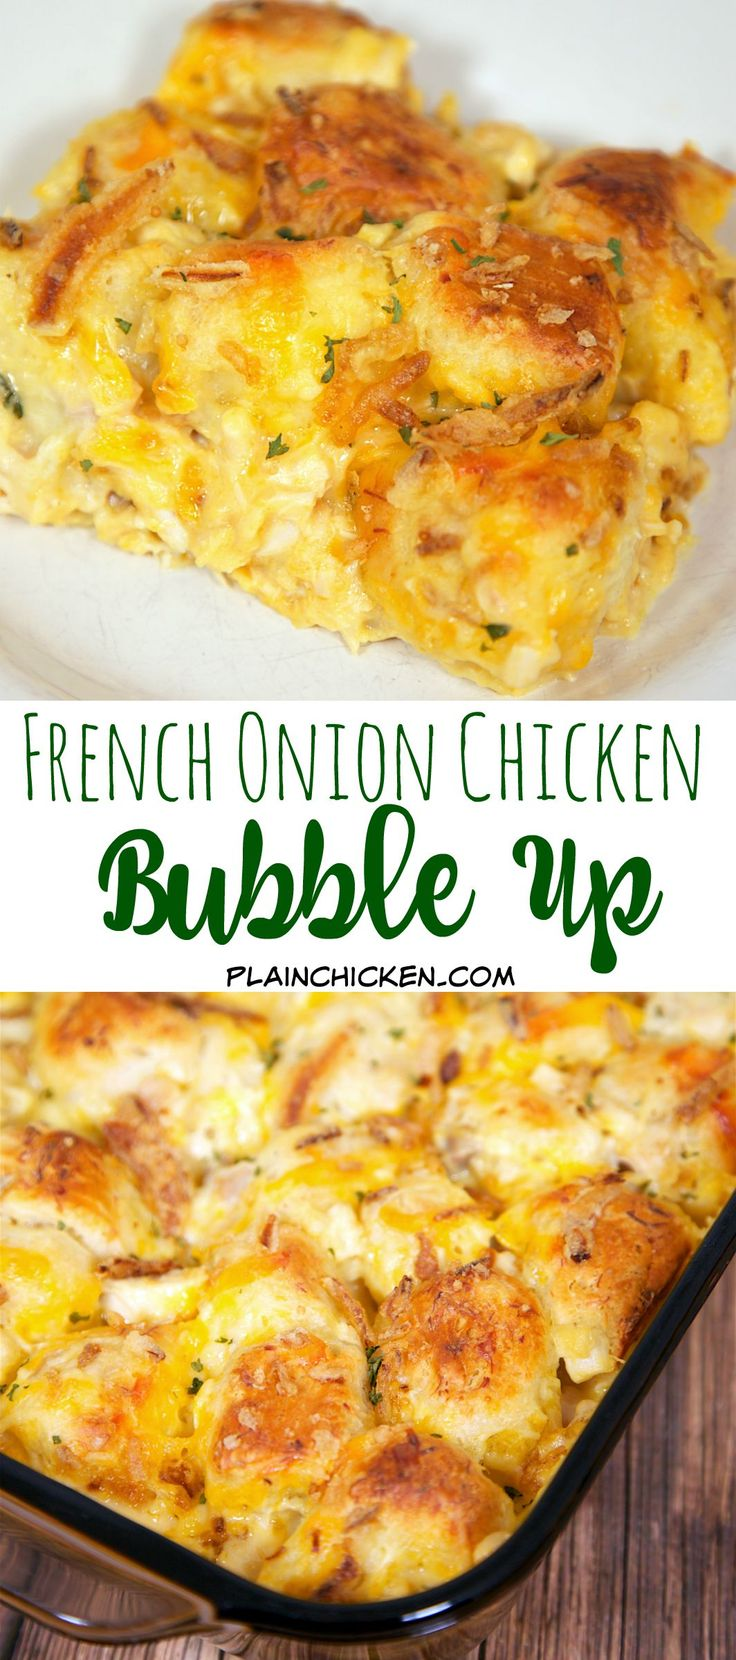 French Onion Chicken Bubble Up – AMAZING! We literally licked our plates! Chicken, French Onion Dip, Chick